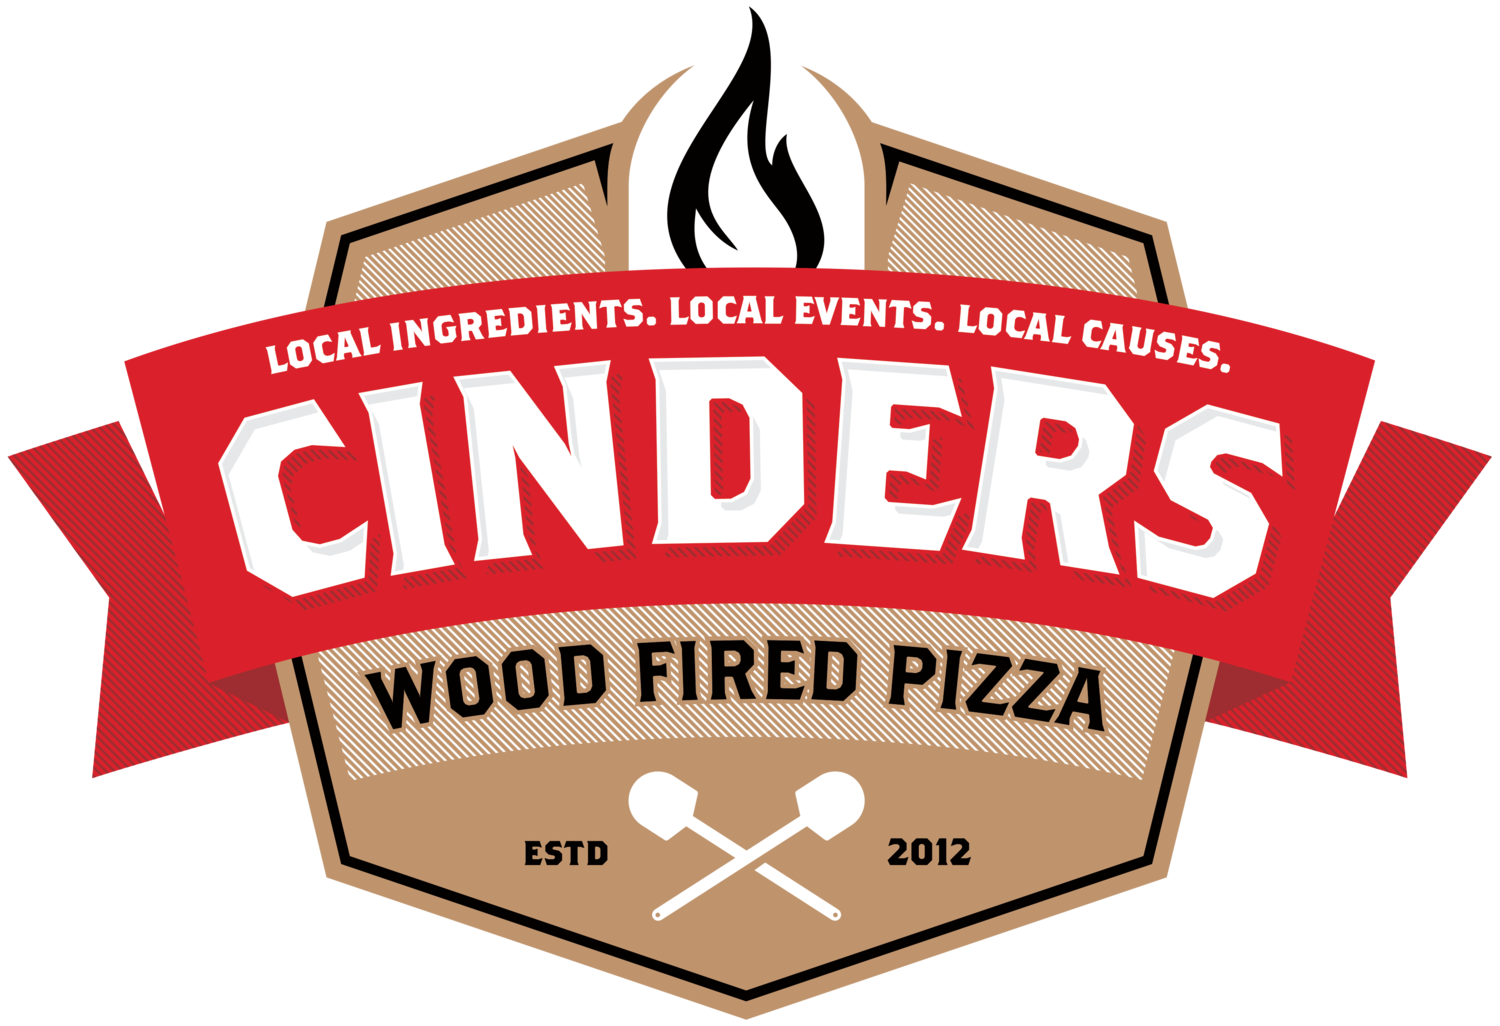 Cinders Pizza - Realm Engineering